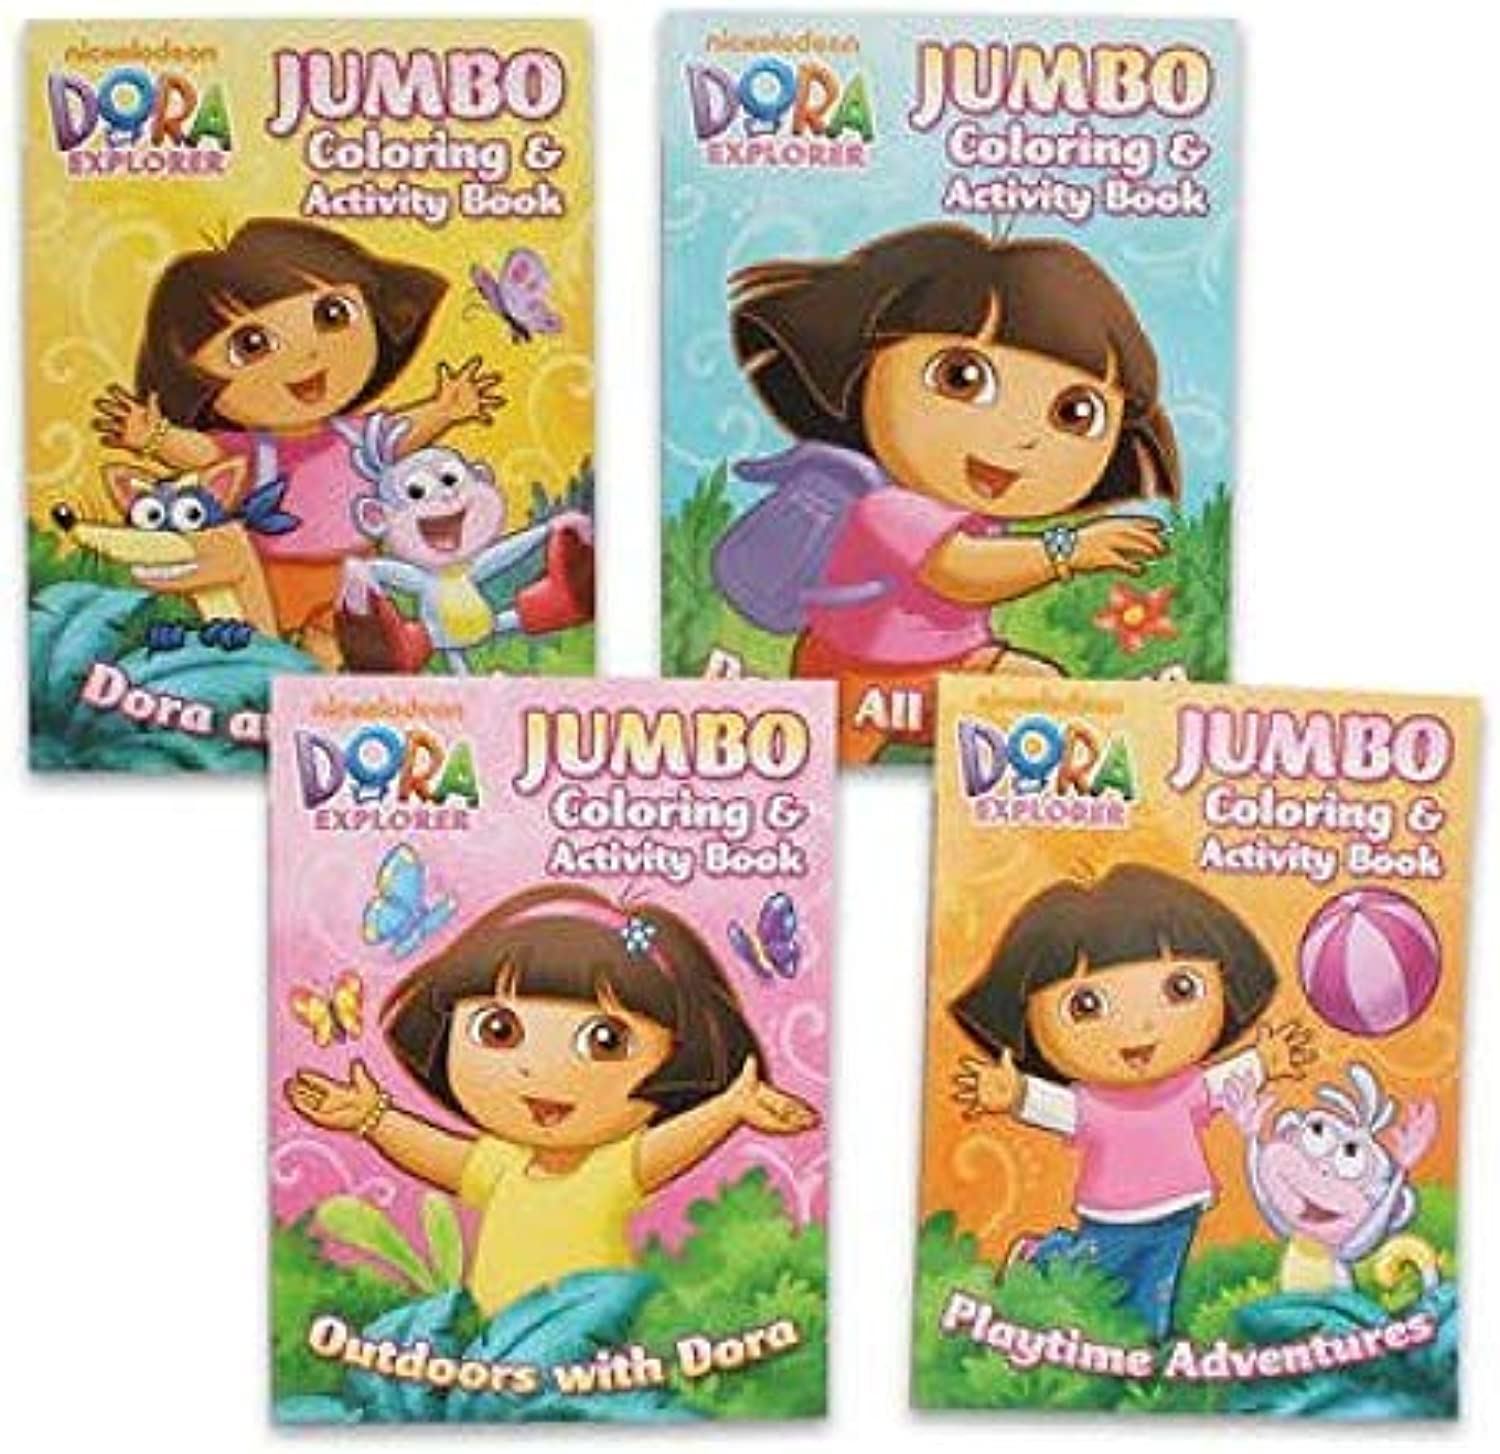 1 piece of Dora the Explorer 4 96p coloring & Activity Book by Nickelodeon